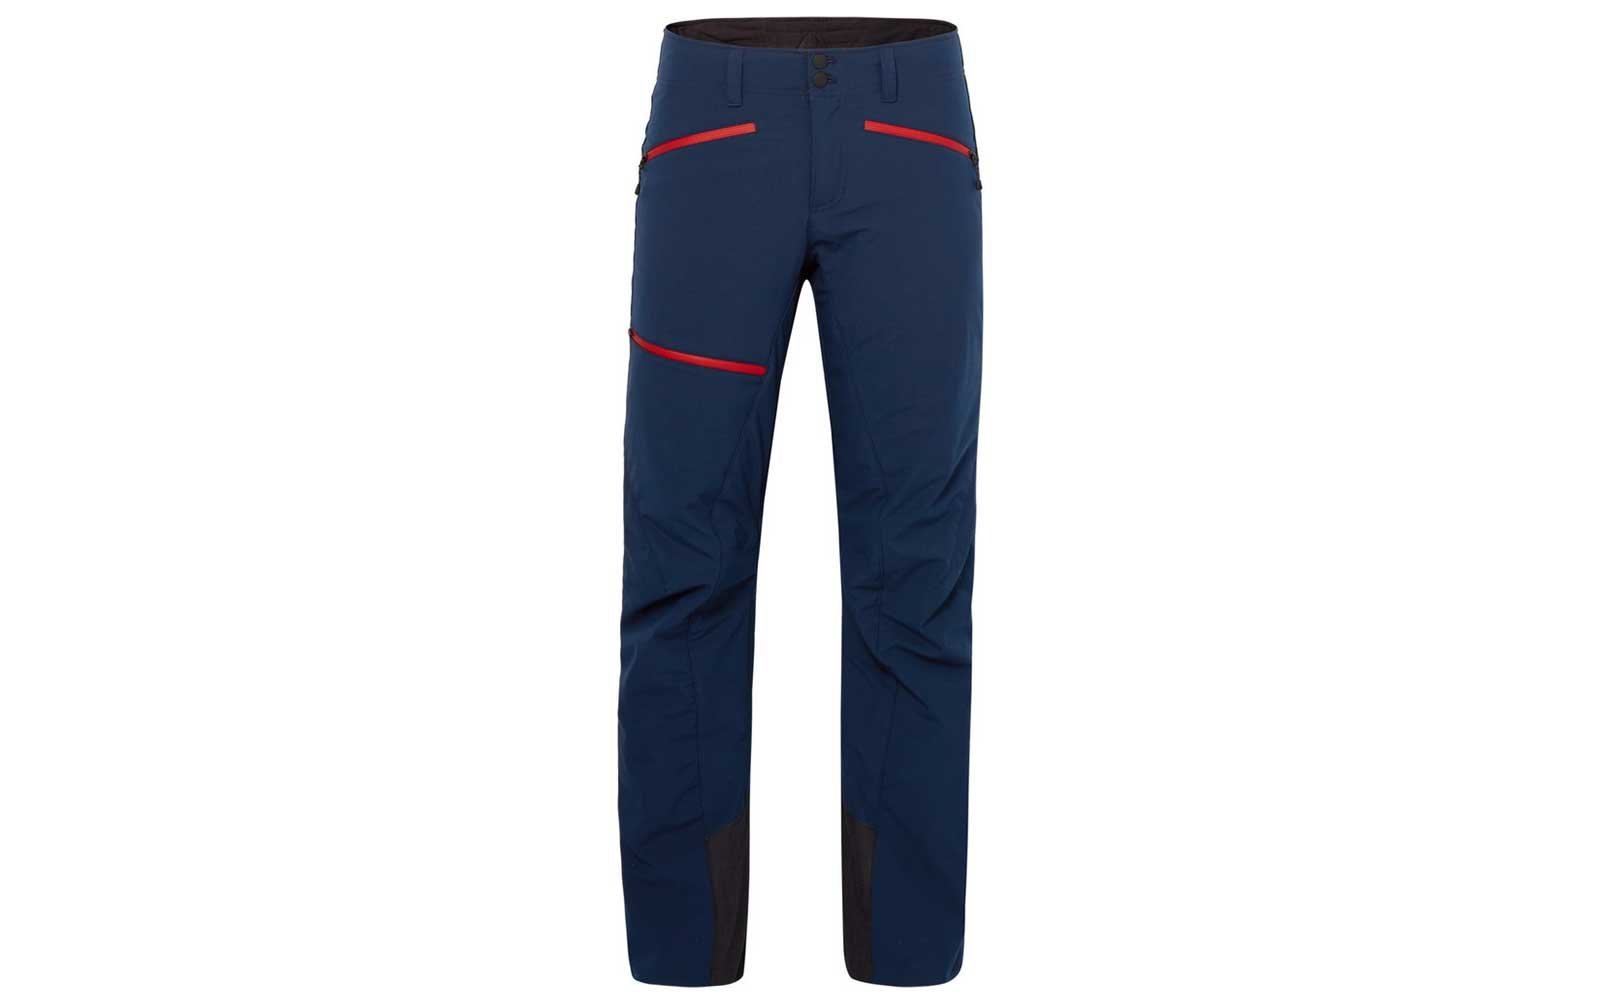 Red and blue ski pants by Bogner